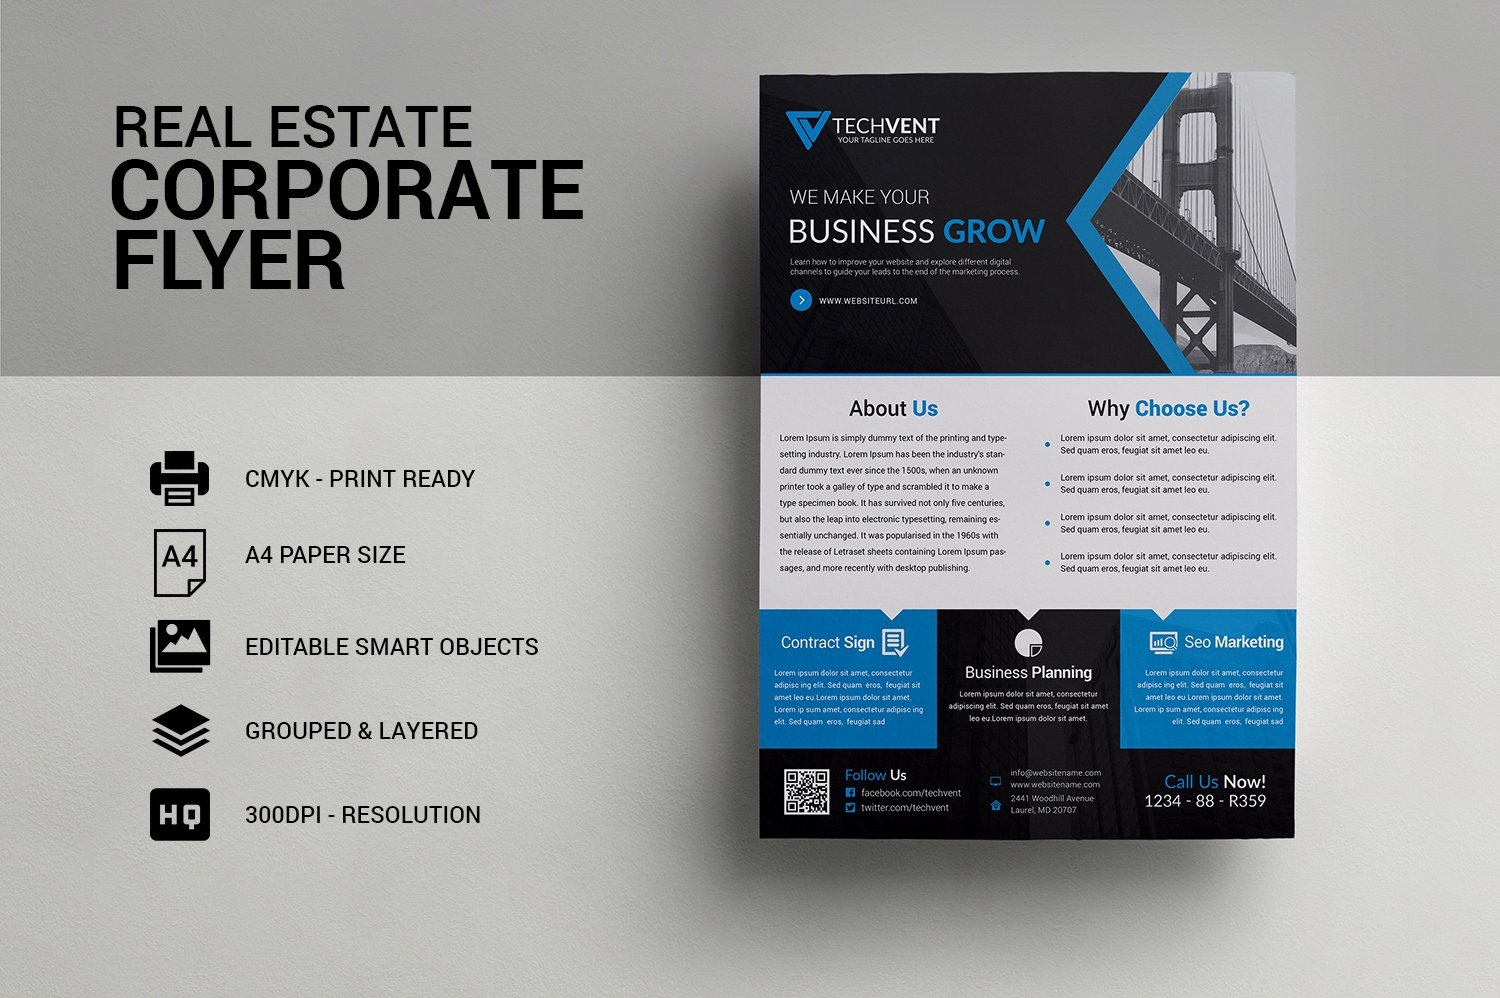 Real Estate Corporate Flyer Template ~ Flyer Templates ~ Creative Market